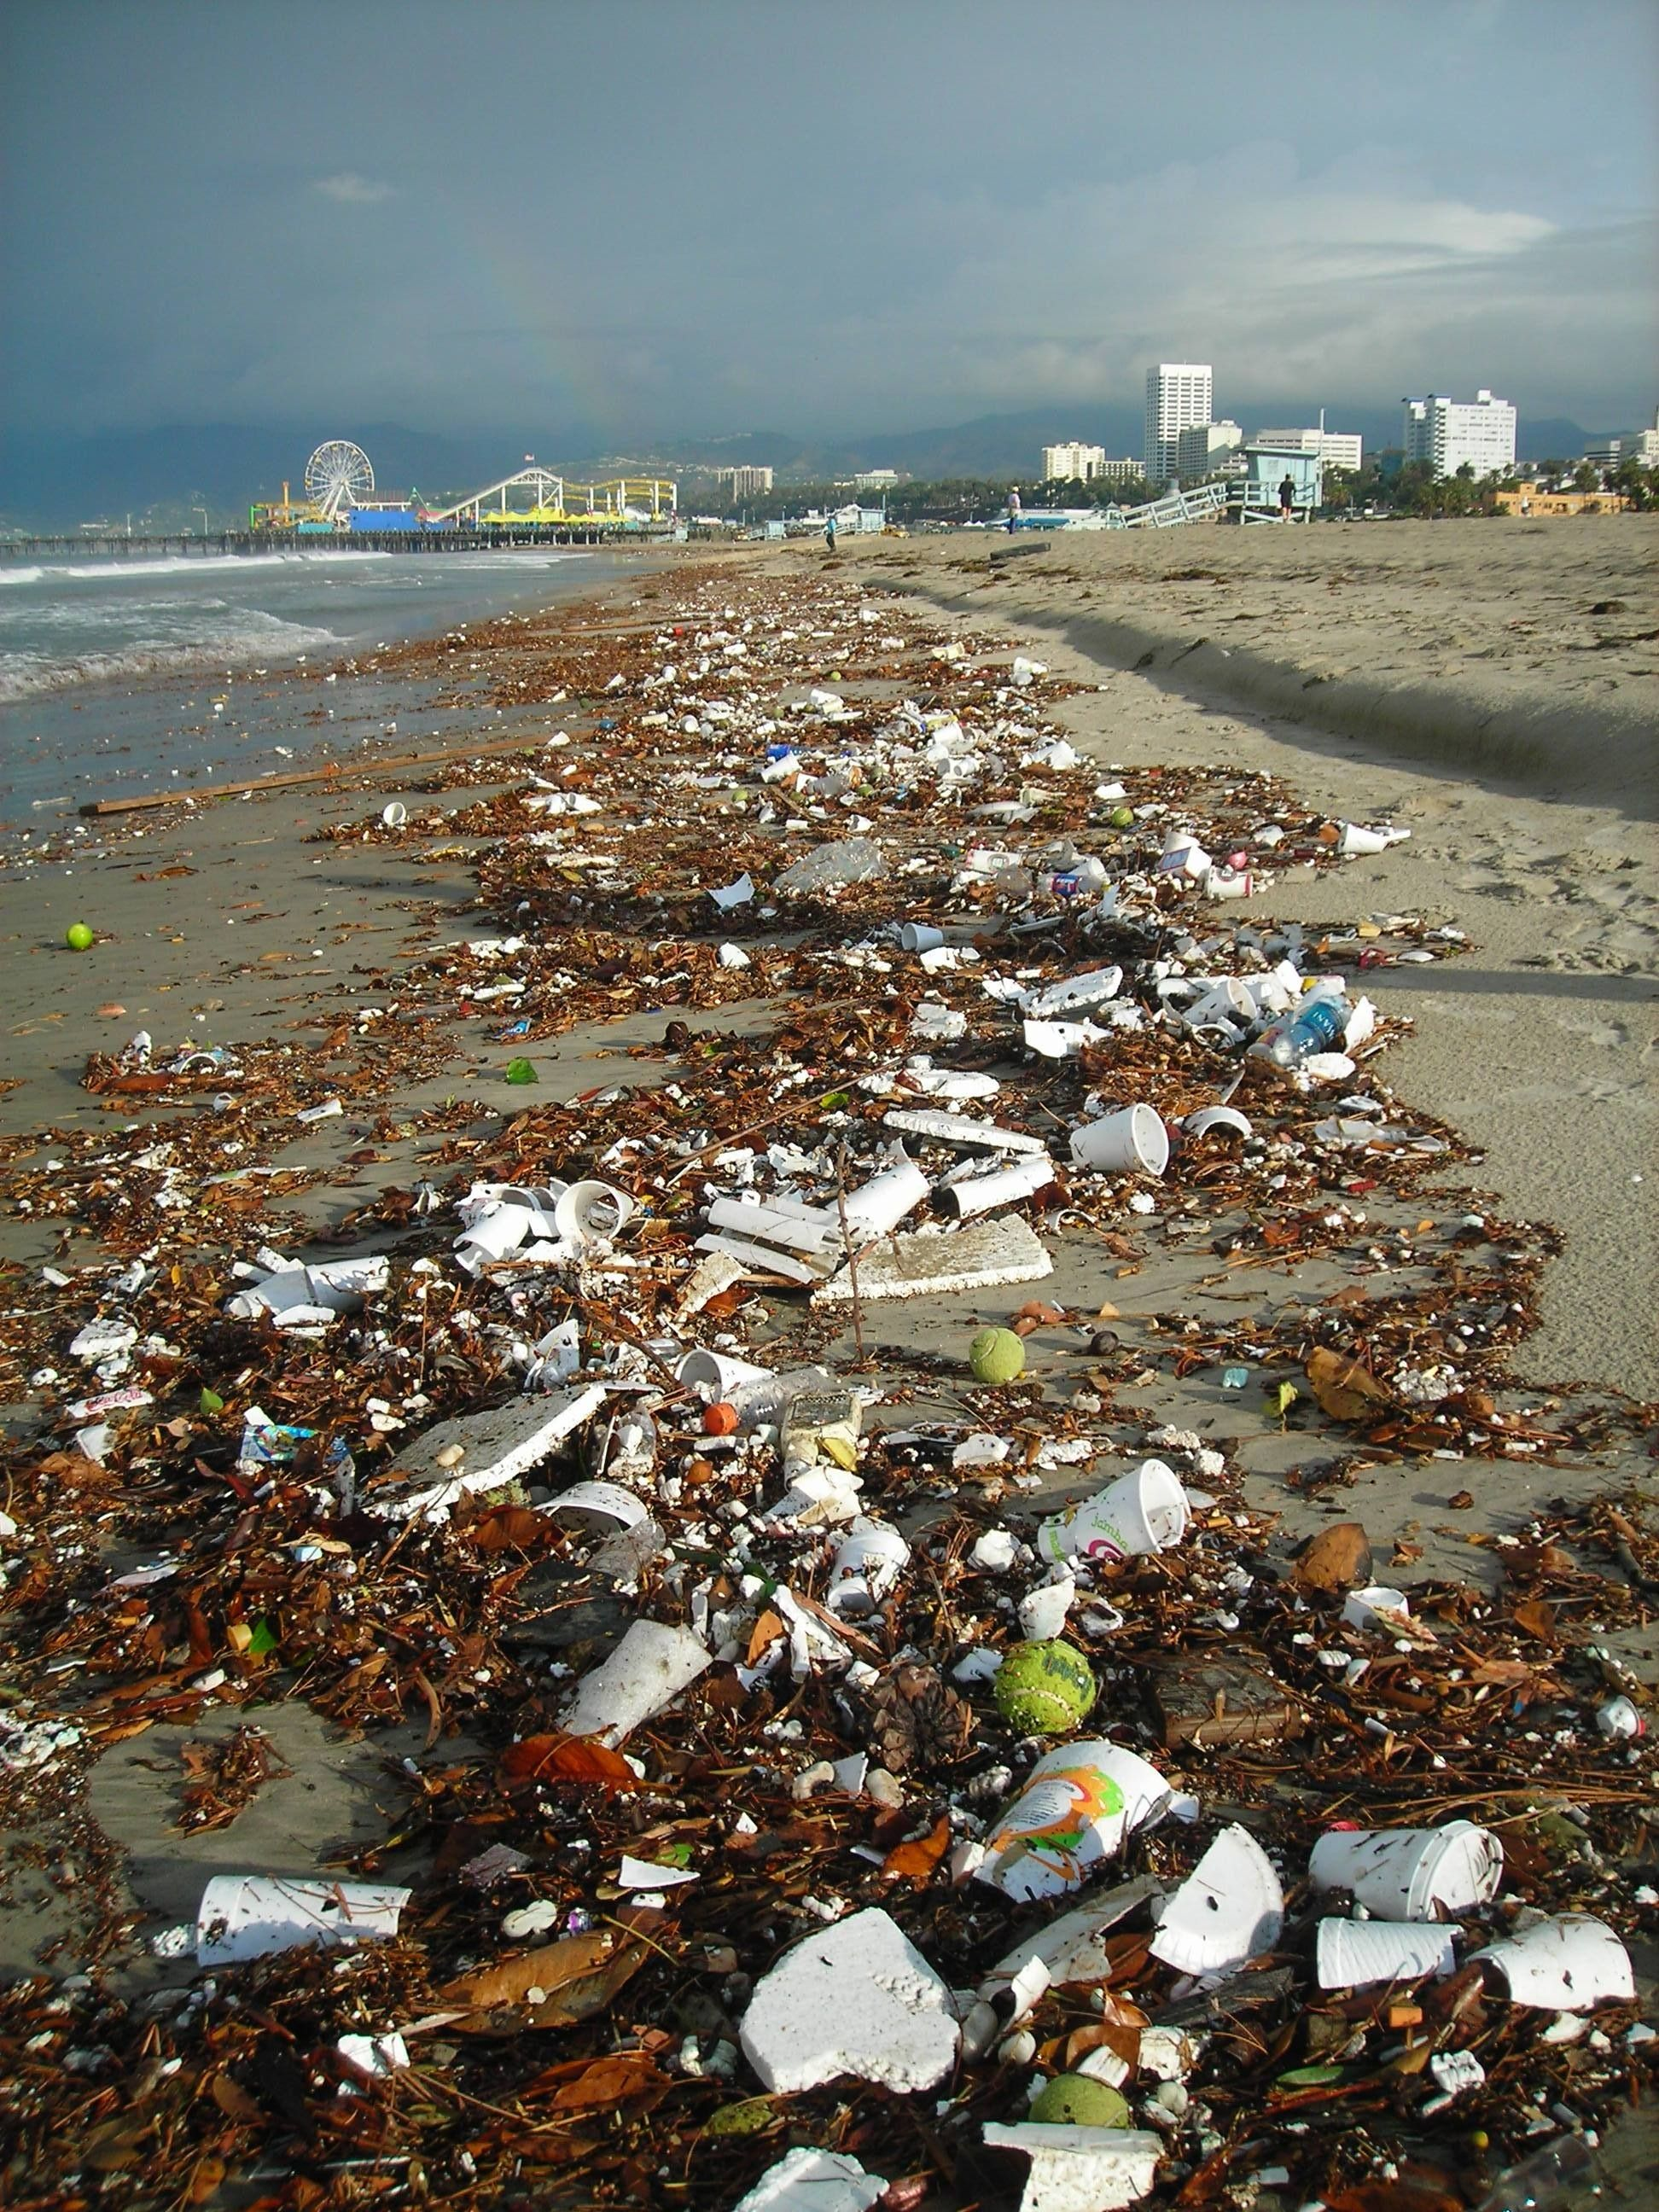 Debris Washed Up On Shore Flat Styrofoam Drink Cups Straws